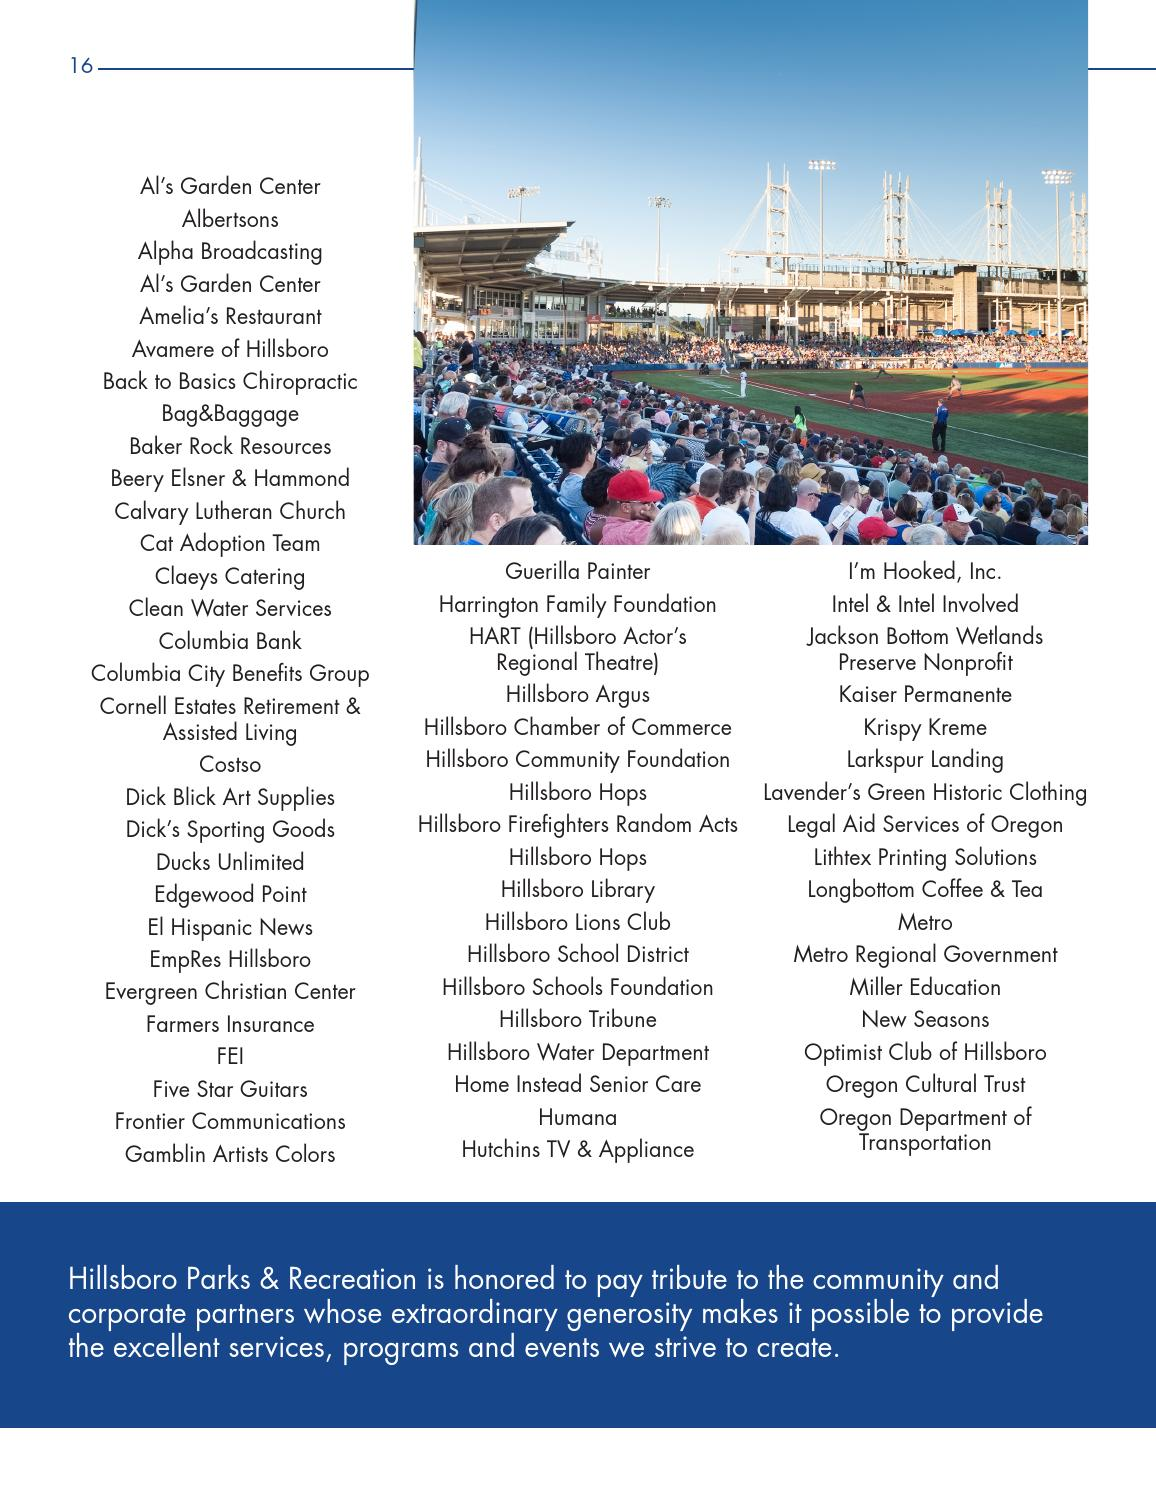 Hillsboro Parks & Recreation 2014 - 15 Annual Report by